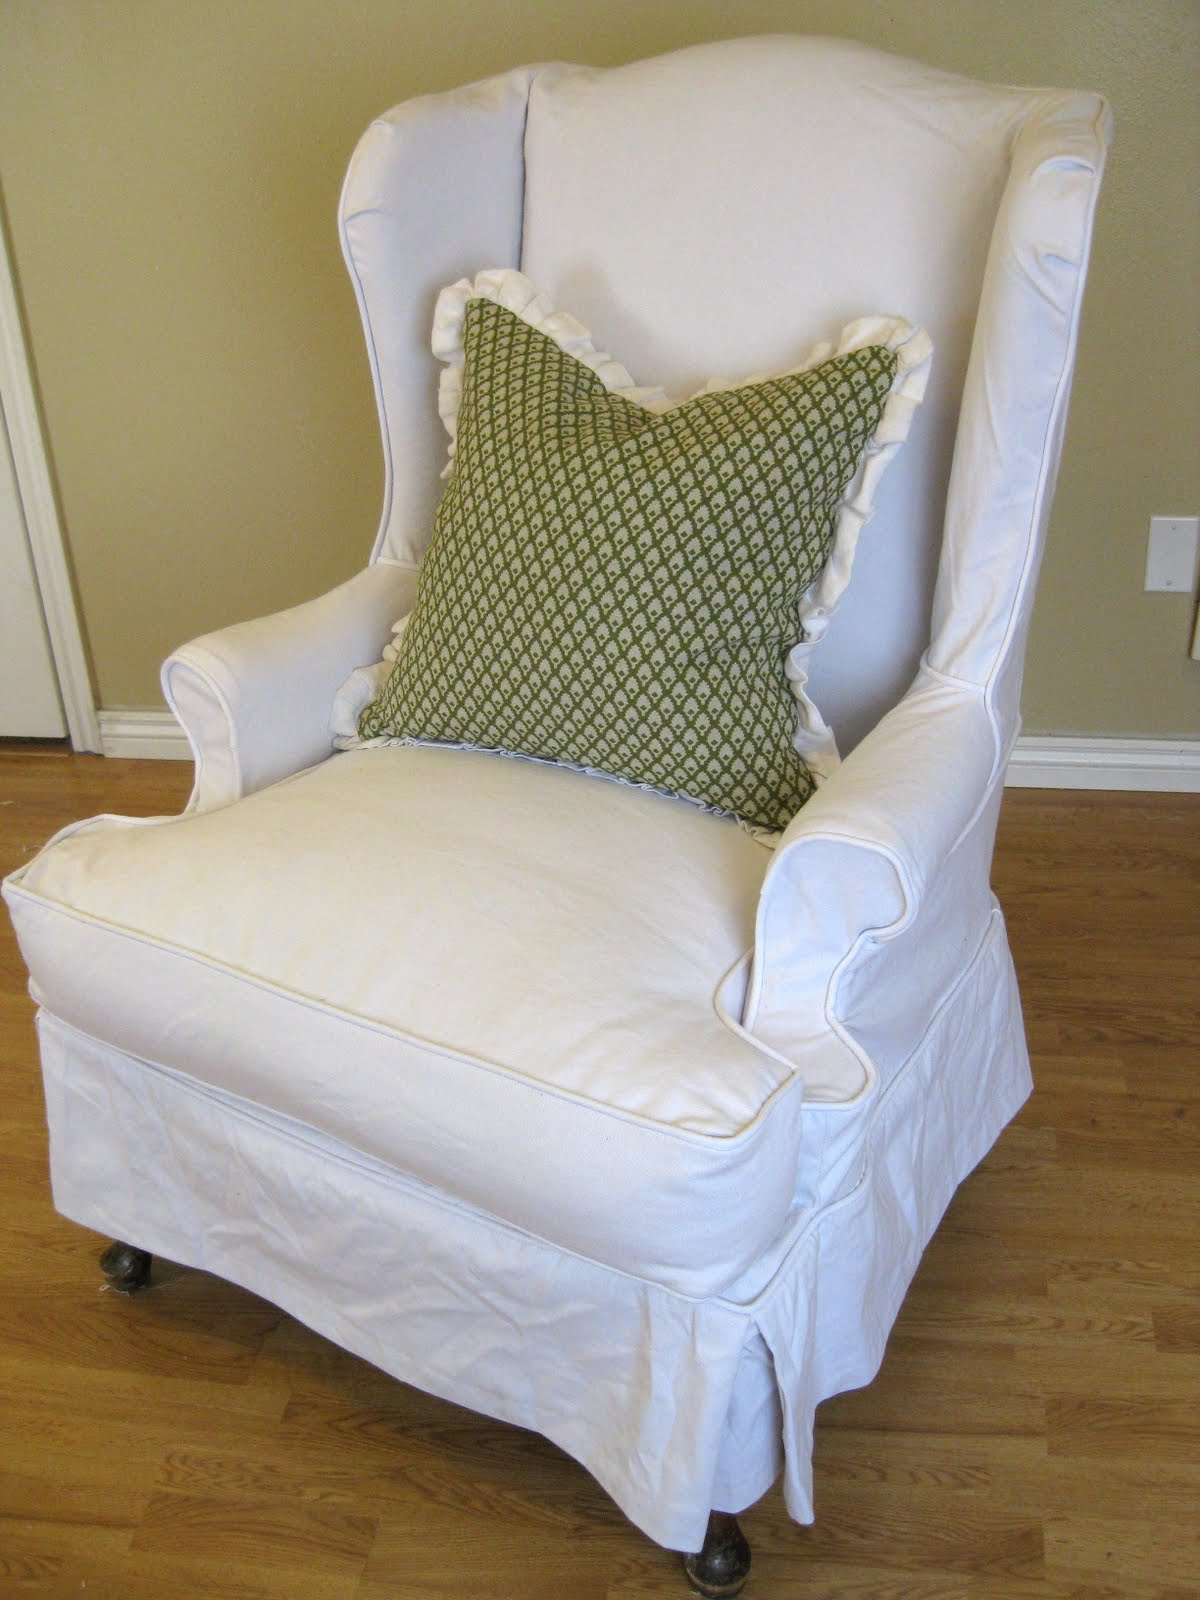 Ordinaire White Denim Wingback Chair